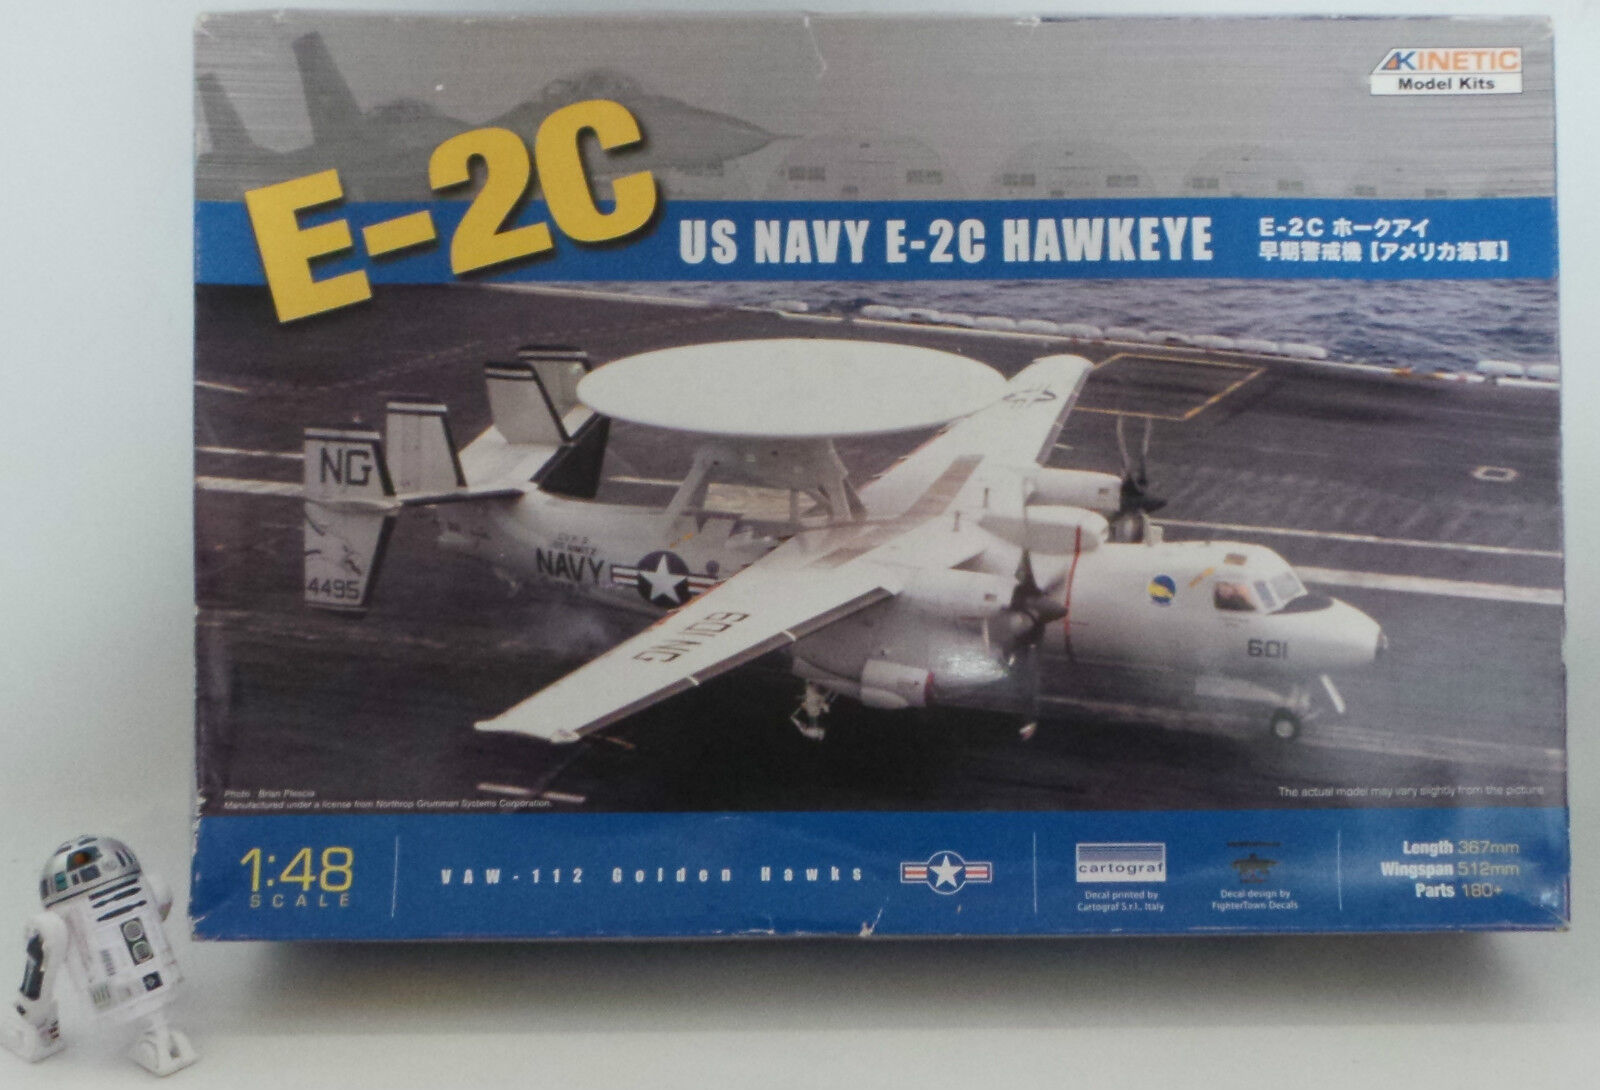 AVIATION    US NAVY E-2C HAWKEYE MODEL KIT MADE BY KINETIC TOYS IN 2009